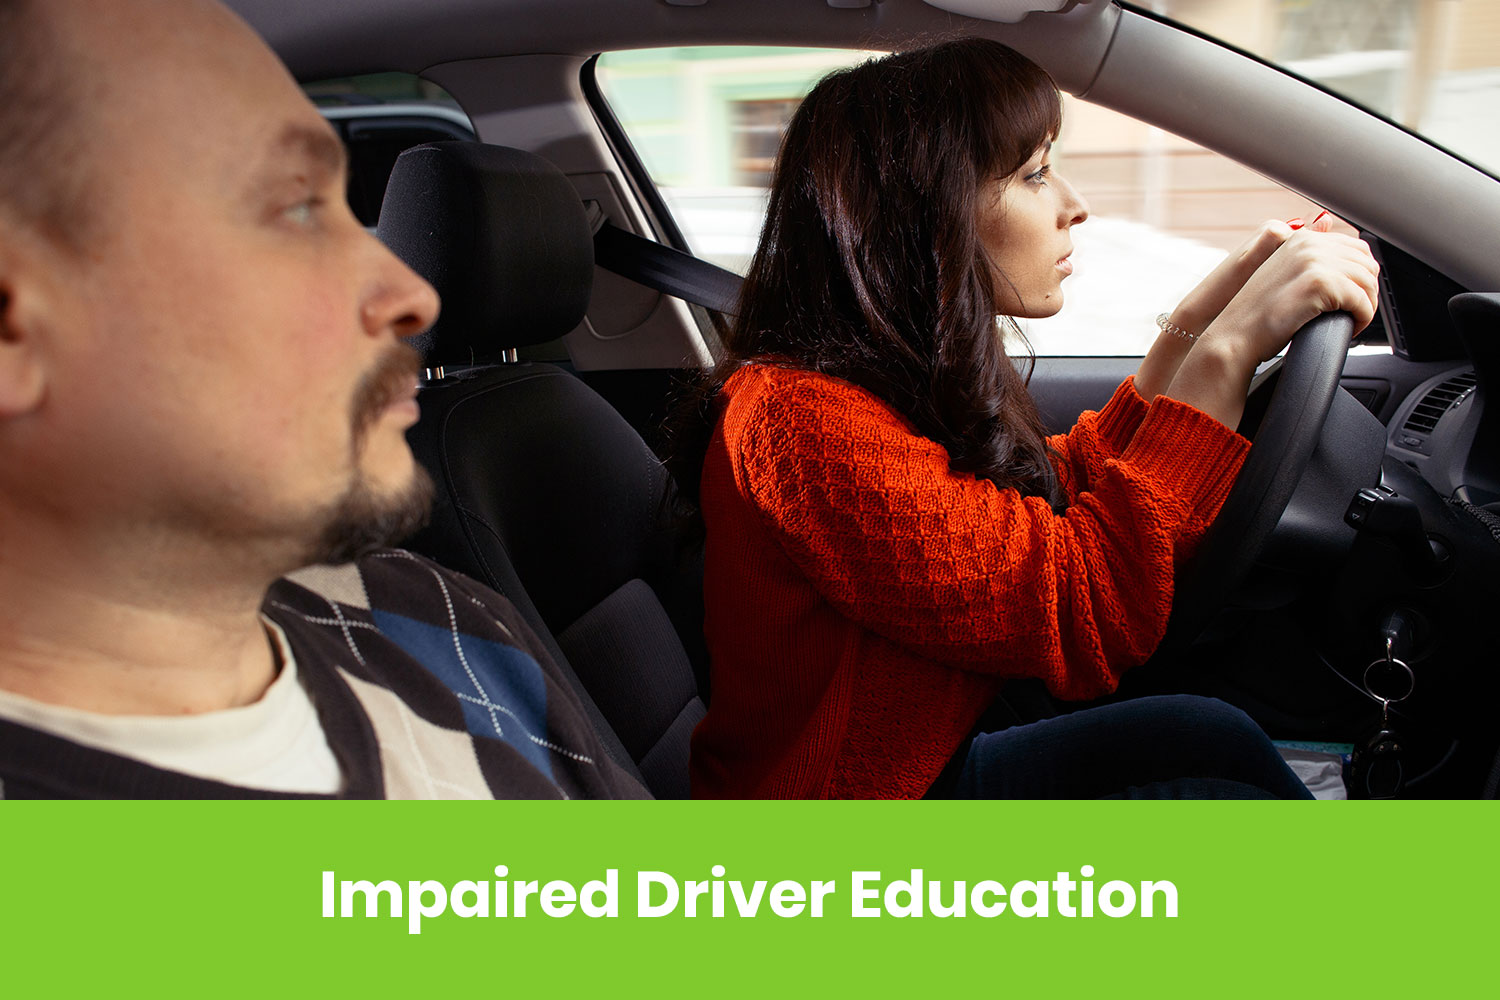 Impaired Driver Education